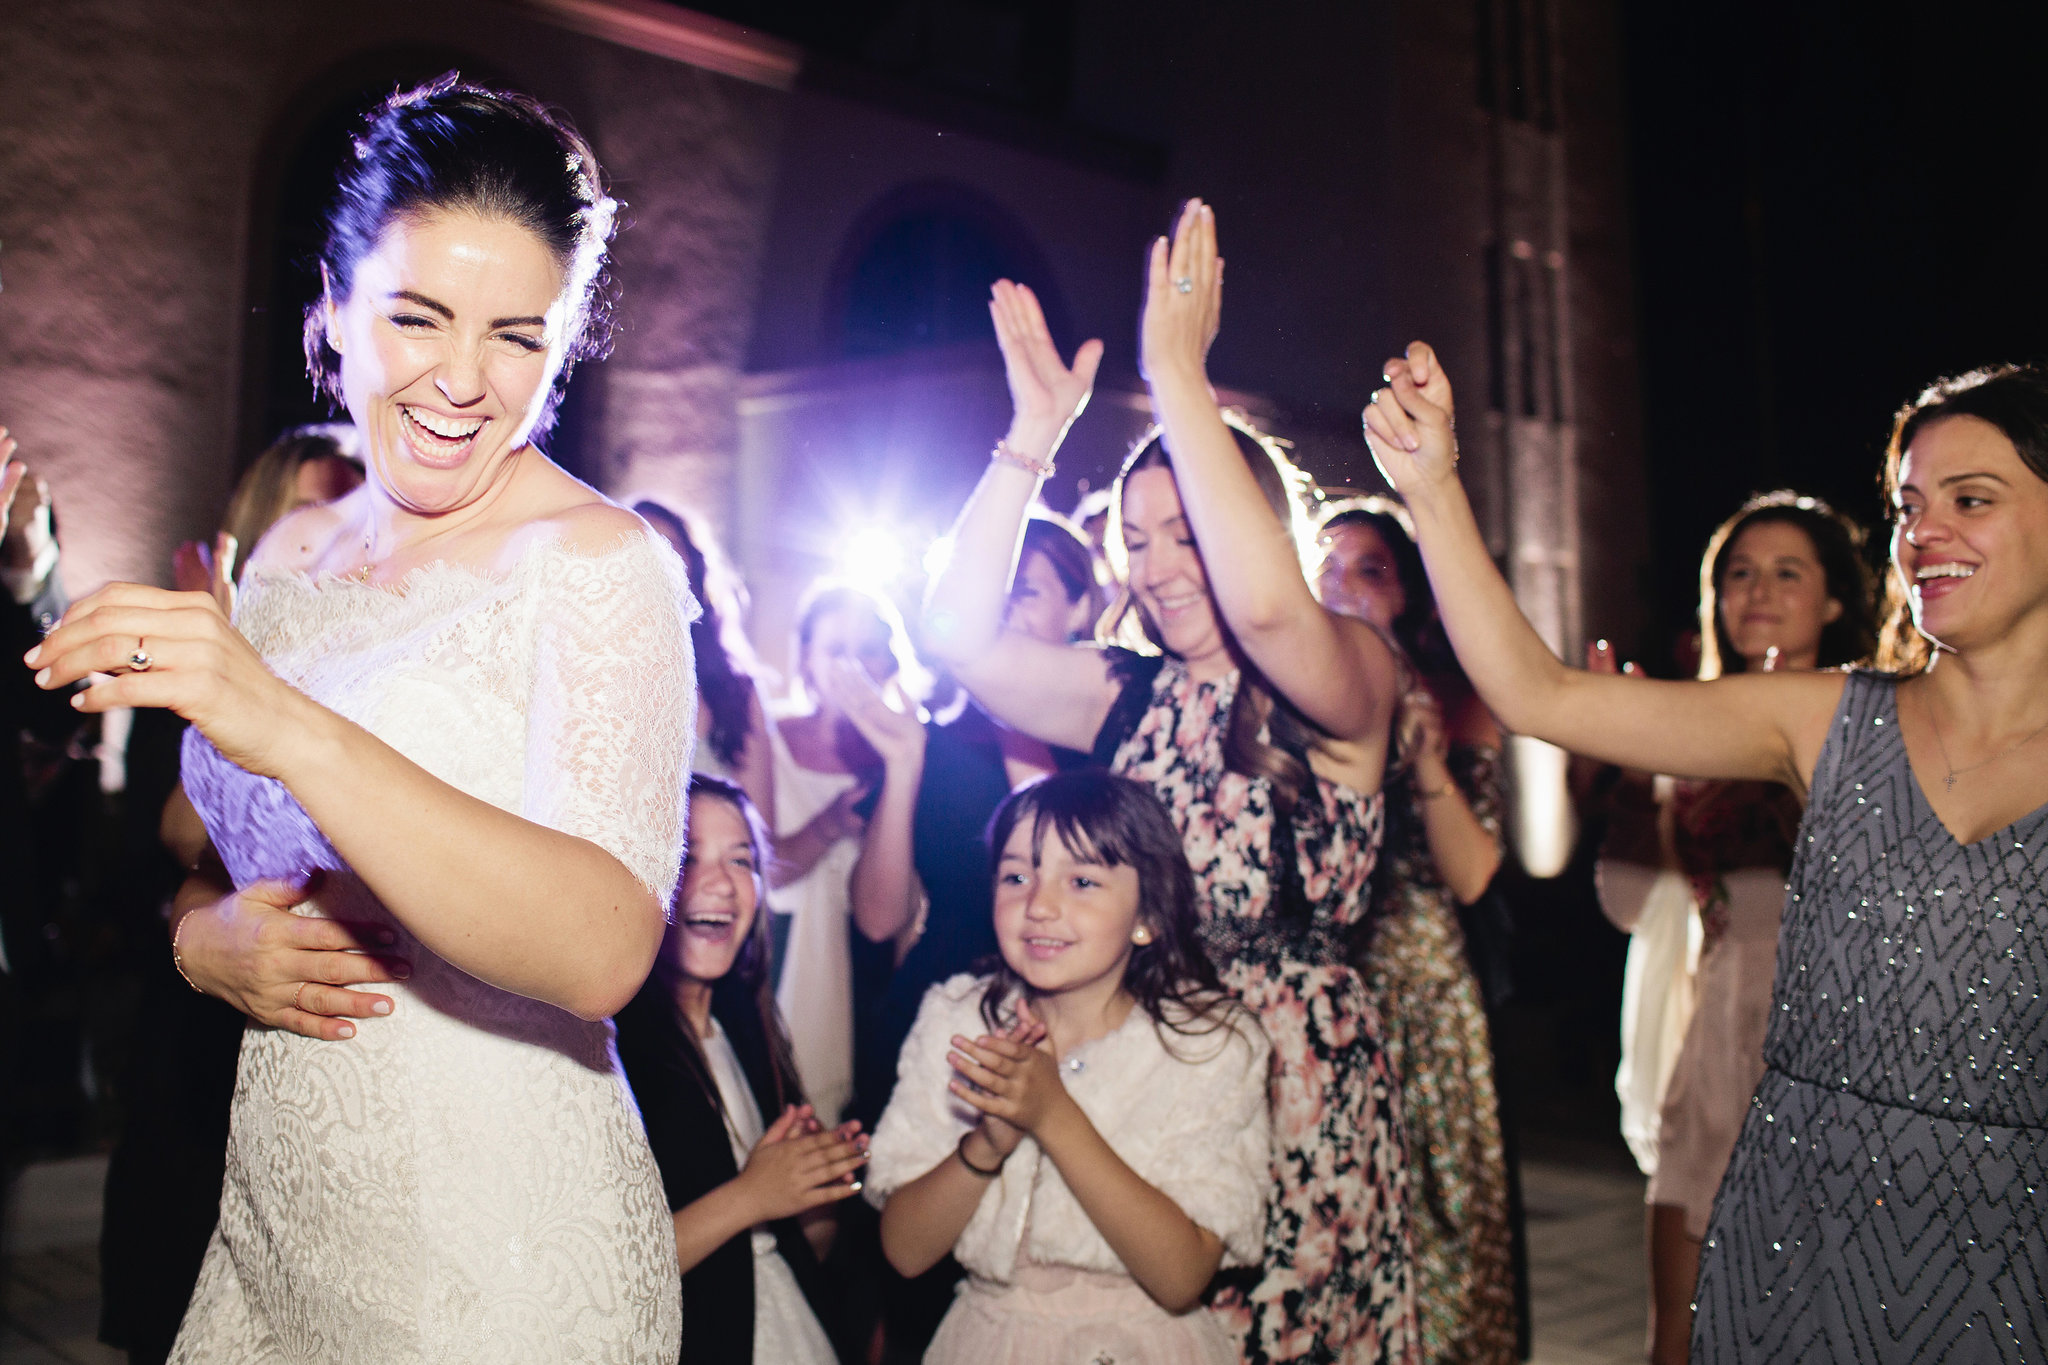 Sacramento-Greek-Wedding-106.JPG